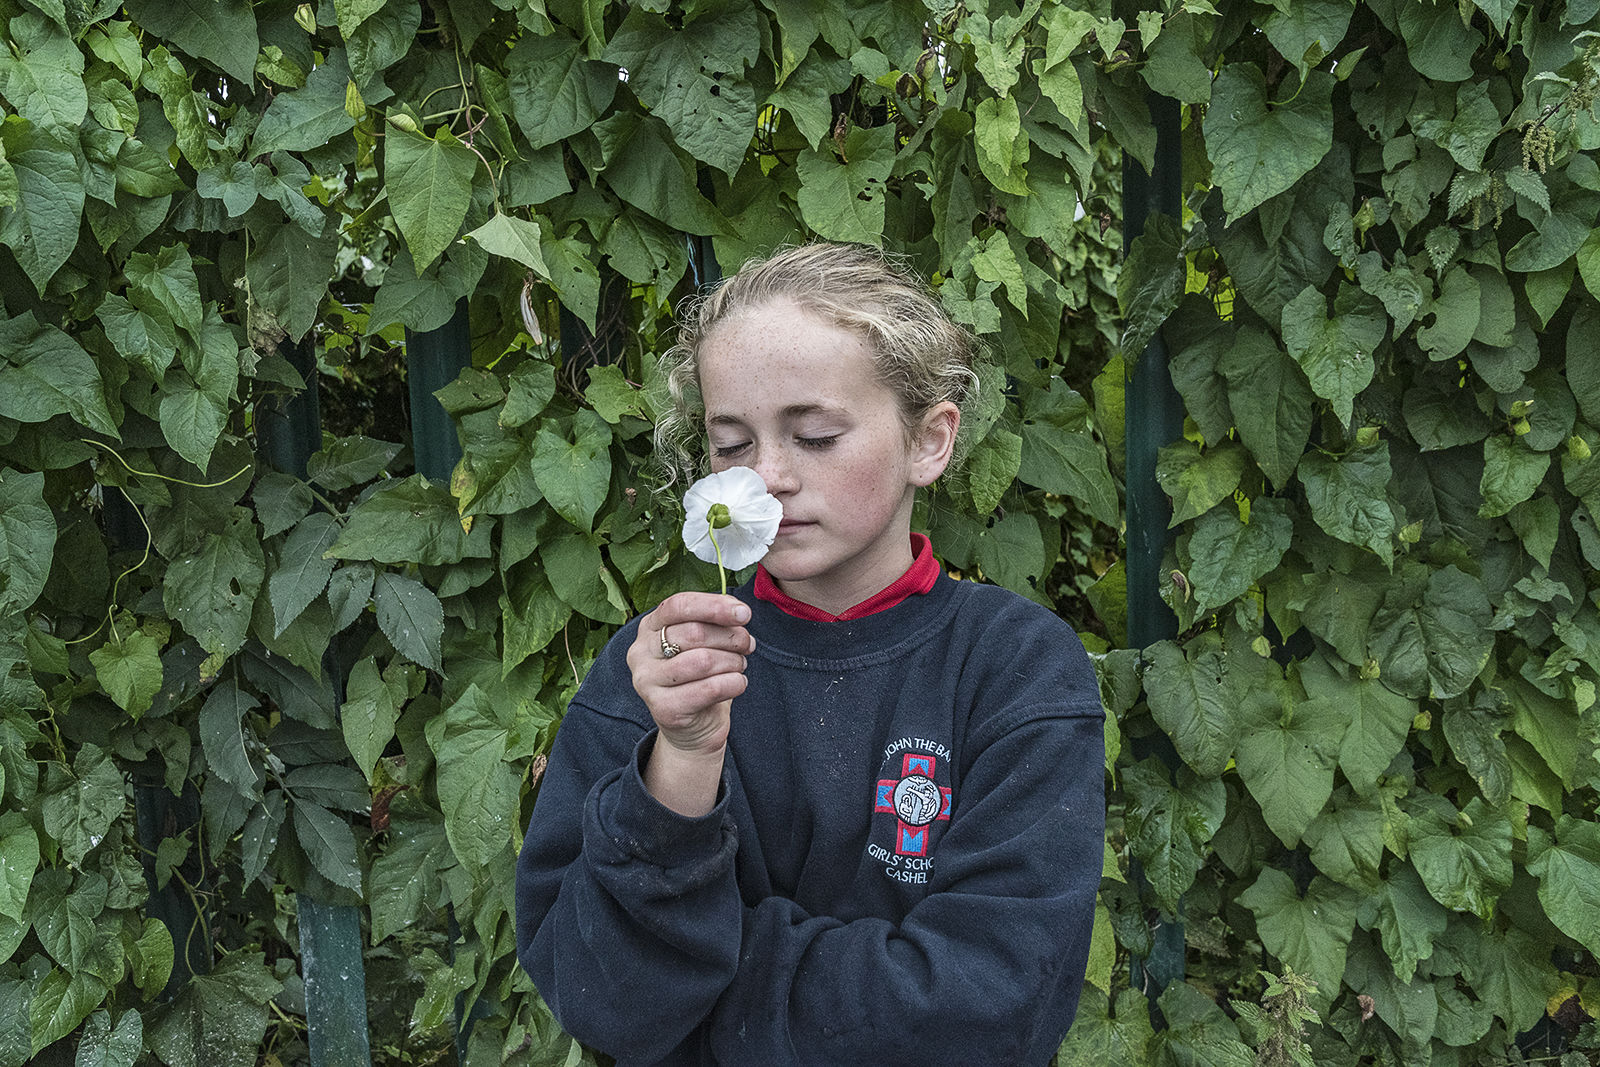 Kaitlyn smelling Flower, Tipperary, Ireland 2019